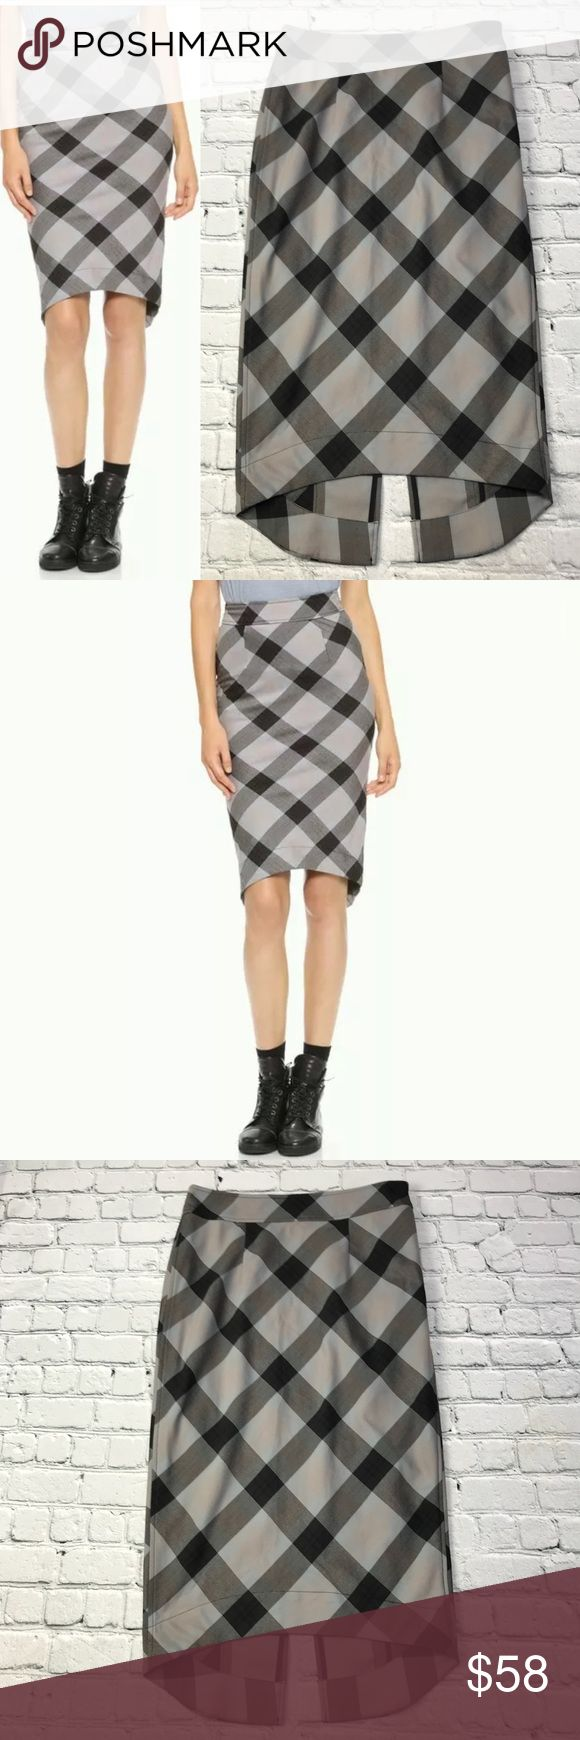 """Free People Lasy Macbeth Pencil Skirt Free People Womens Lady Macbeth Back Slit Skirt in Washed Black Size:6 Type:Skirt Style:Pencil Brand:Free People Measurements ~Waist: 14""""  Length: front 28"""" back 30.5"""" Condition:Gently used Measurements are taken as follows: Waist~ laid flat, measured across. Length: laid flat, measured from waistband or shoulder to bottom front hem. No tears, holes, stains, fading or defects unless otherwise noted. I accept all reasonable offers! Thanks…"""